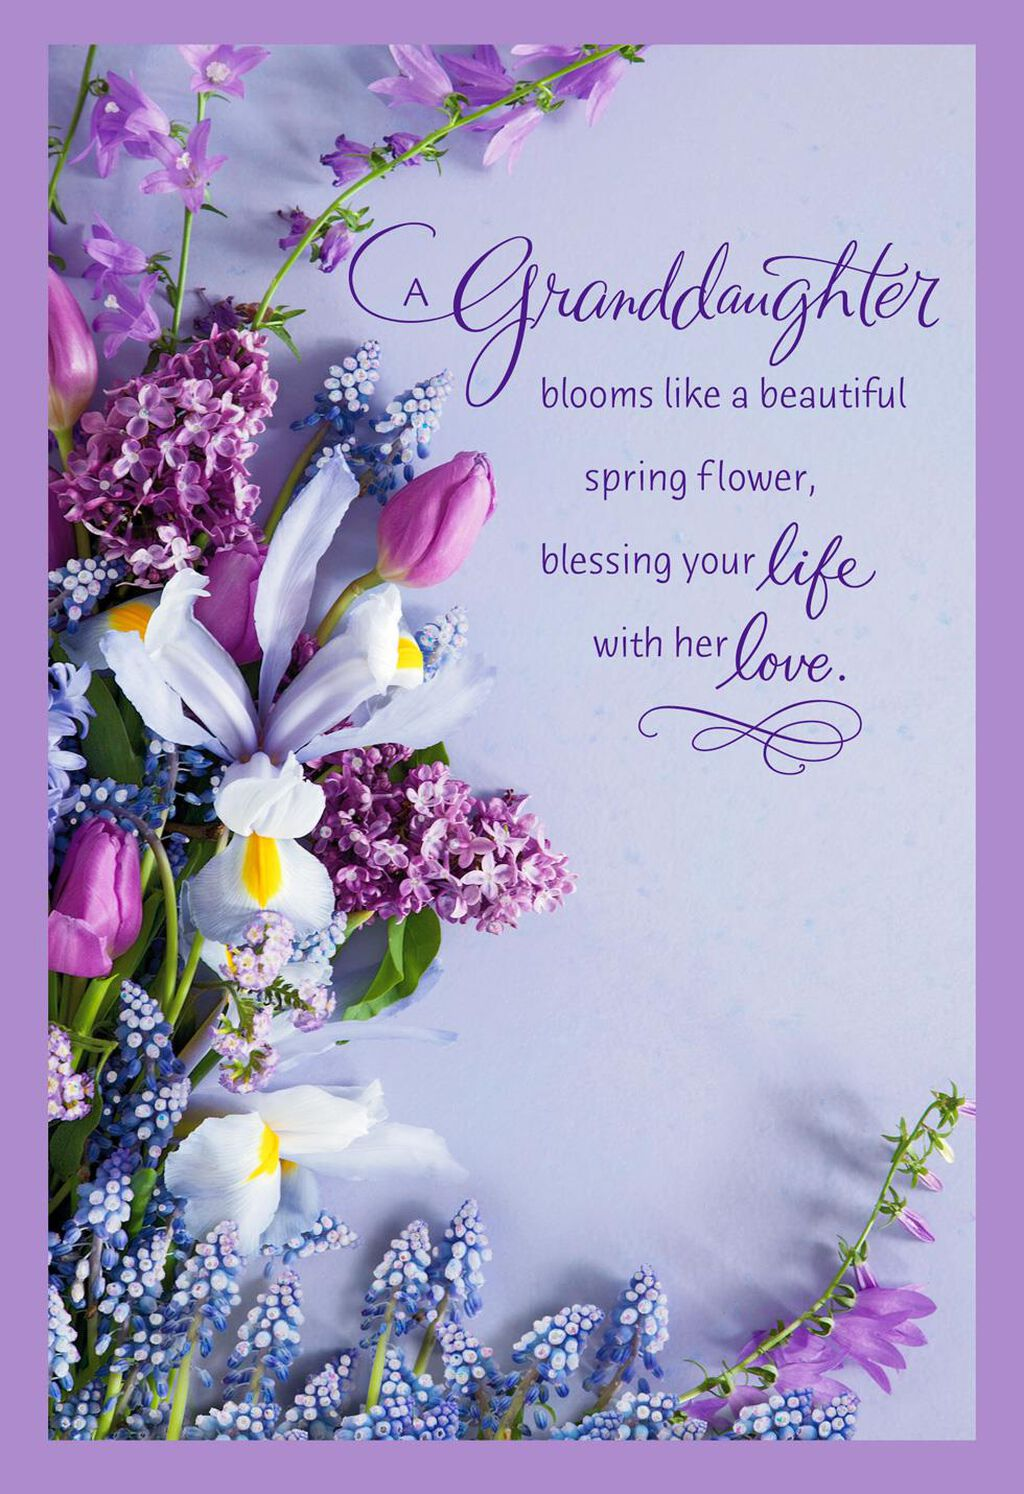 Beautiful Spring Flower Bouquet Easter Card for Granddaughter ...